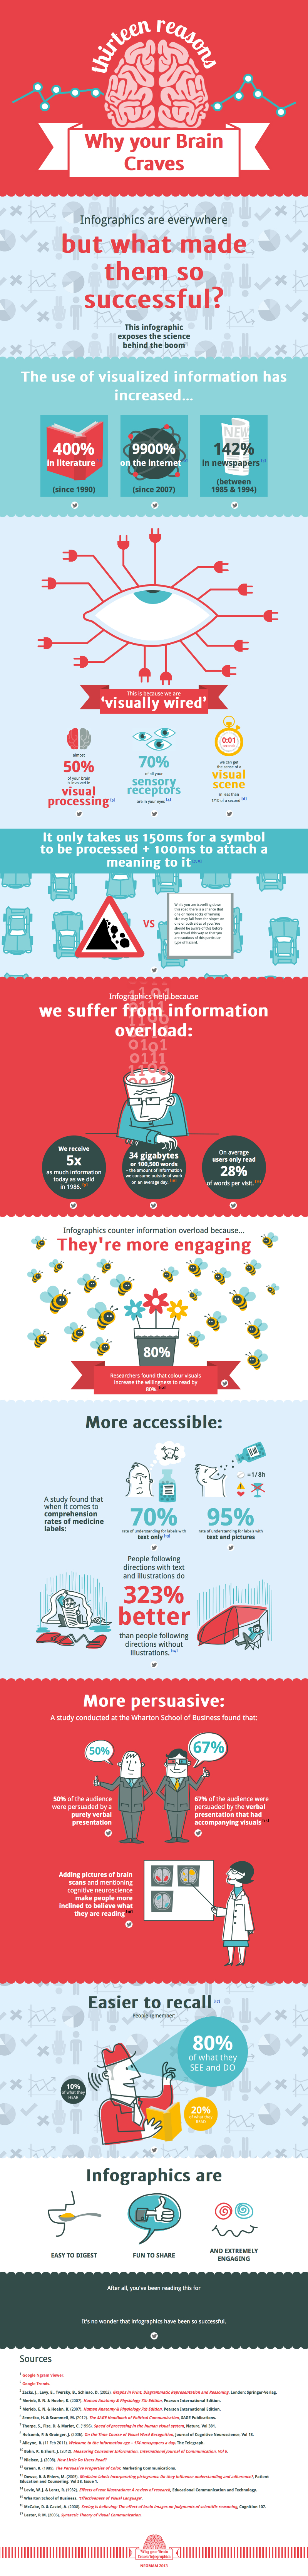 Why-We-Crave-Infographics